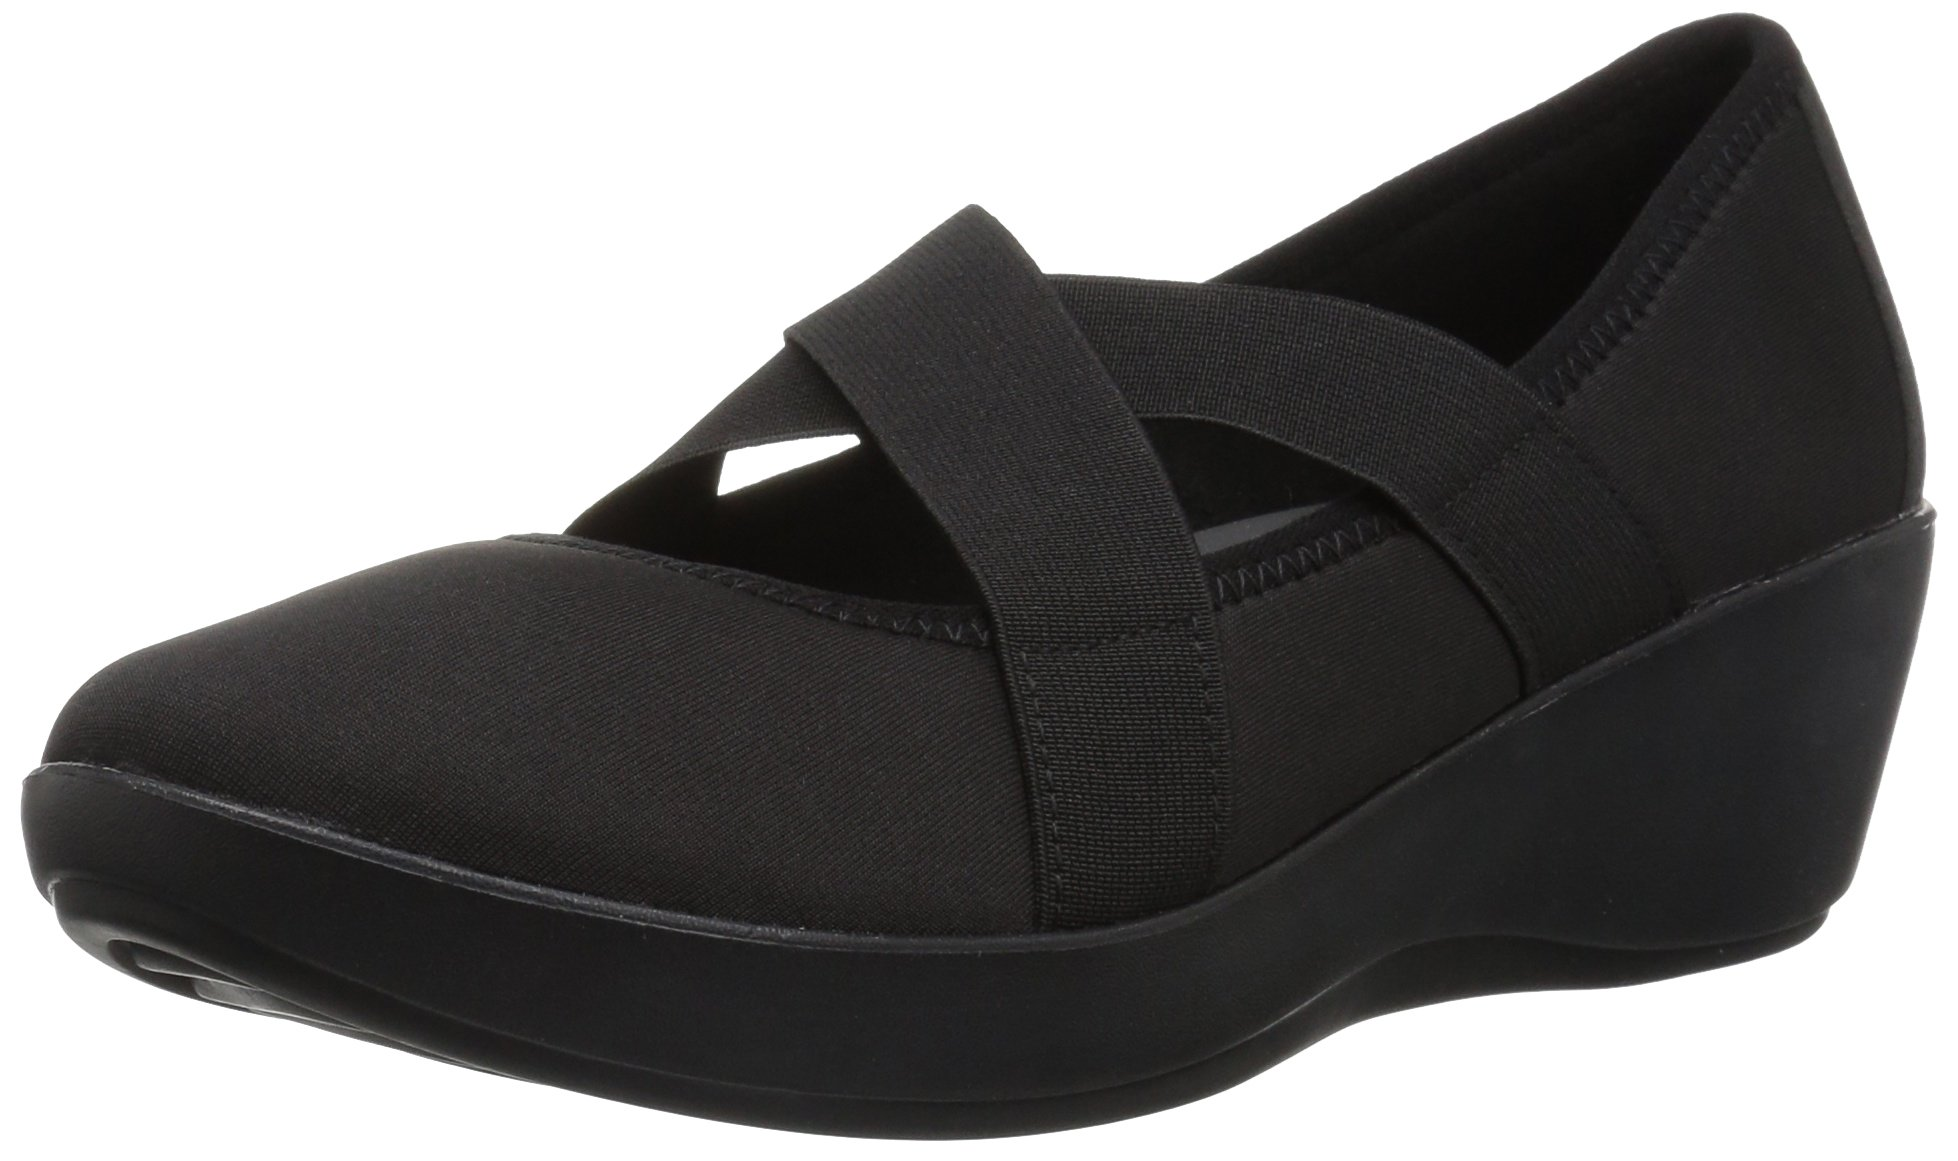 crocs Women's Busy Day Strappy Wedge W Pump, Black/Black, W8 M US by Crocs